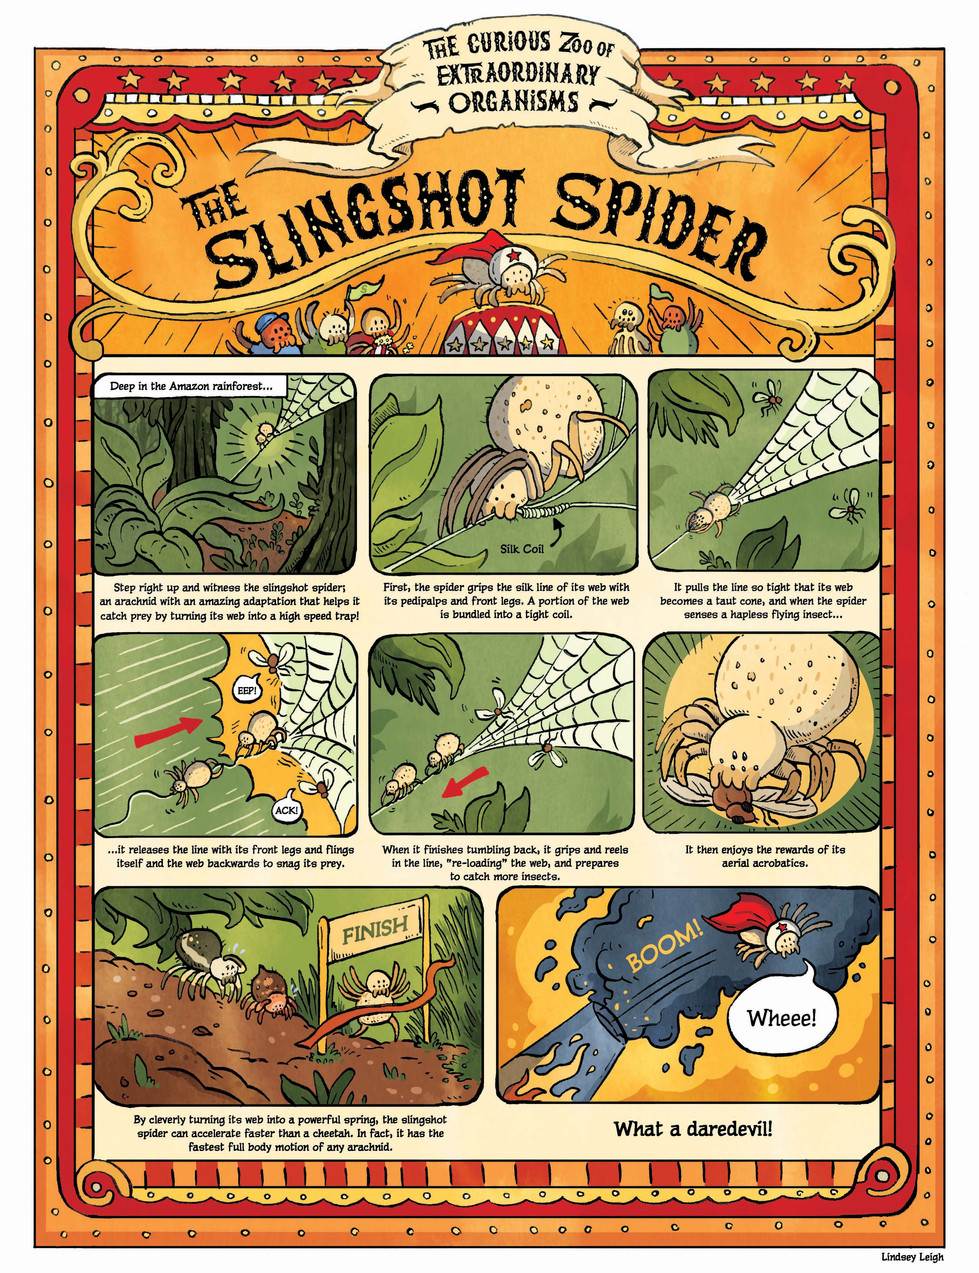 The Curious Zoo of Extraordinary Organisms. Comic on Slingshot Spider. Bhamla Georgia Tech 2020